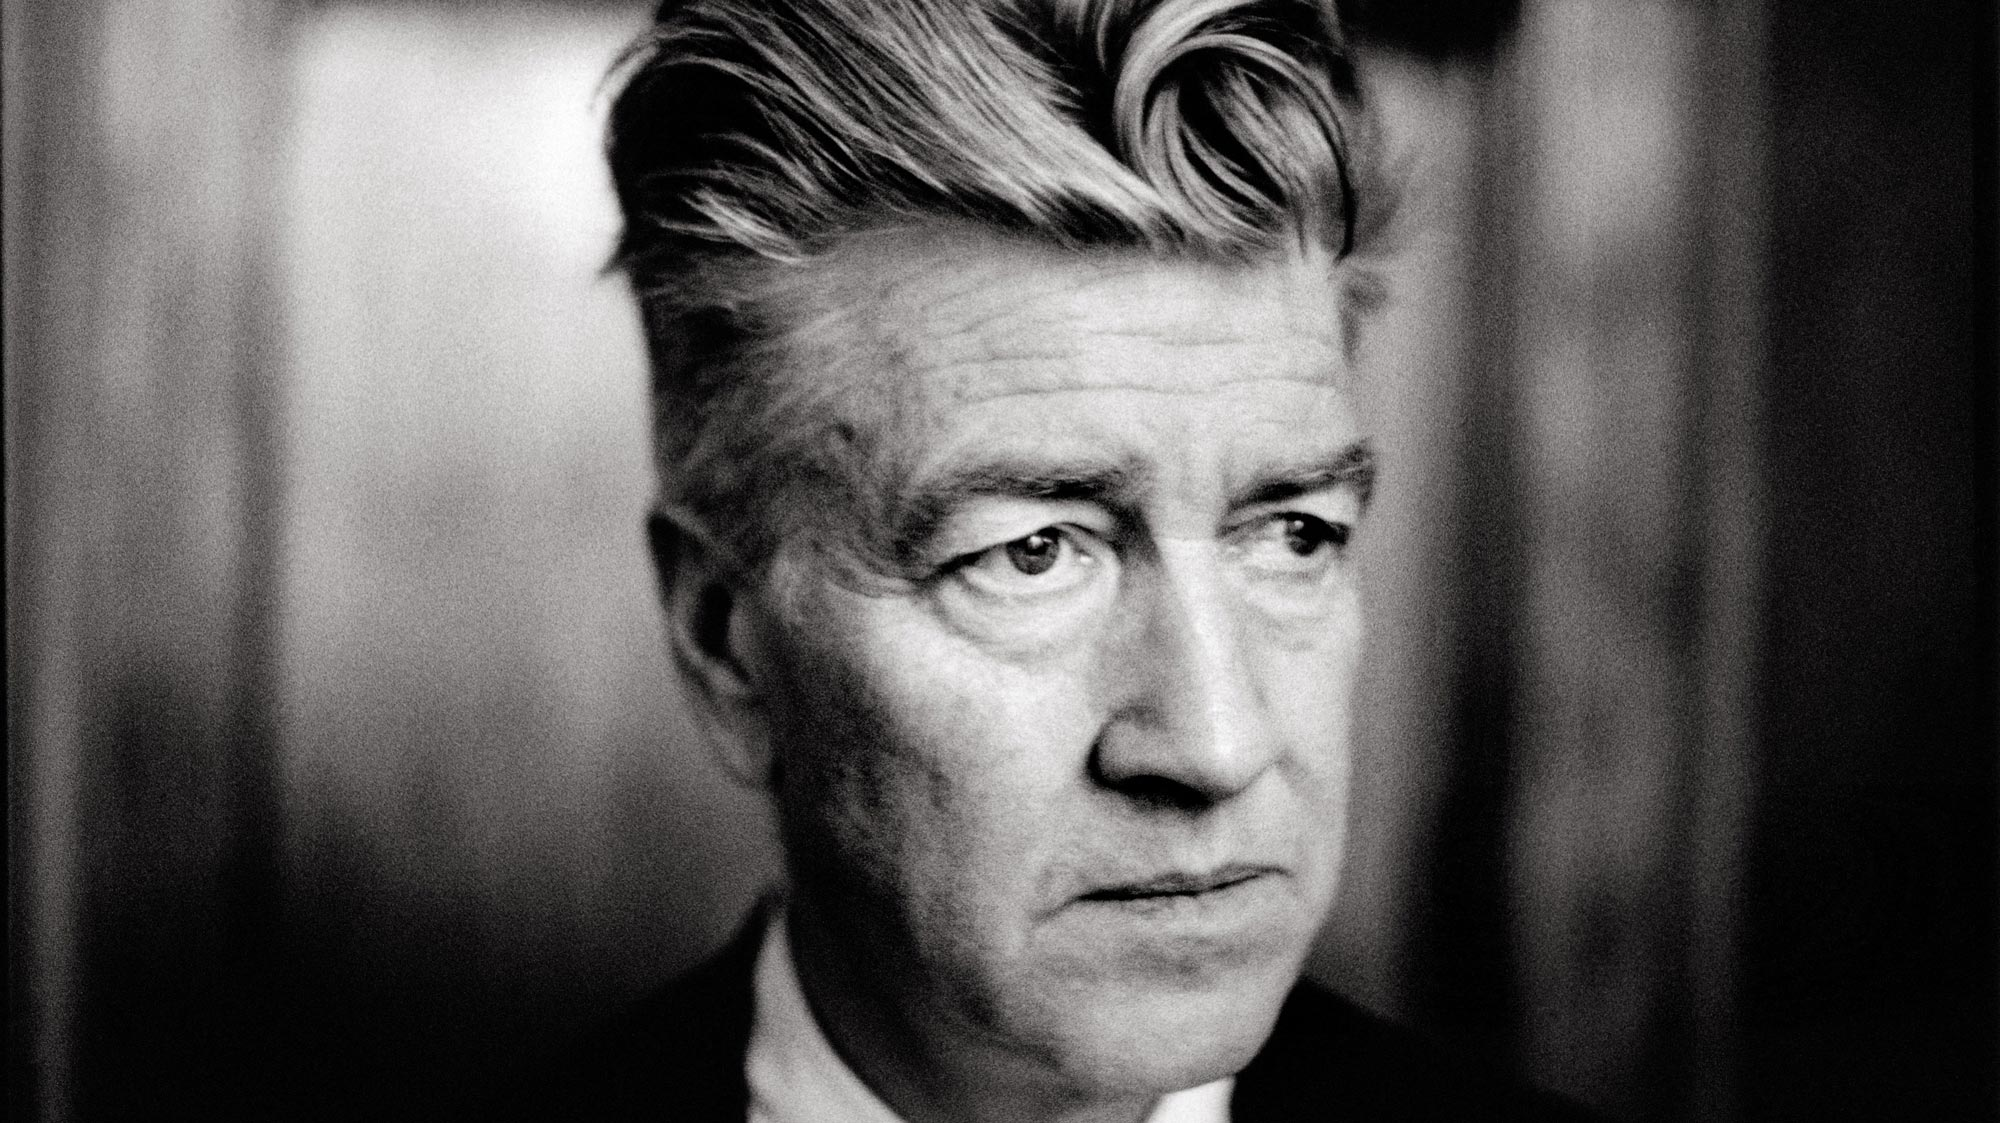 7 ART CINEMA | David Lynch | Articles, Informations, Extraits Videos, Photos, Filmographie | 1977 : Eraserhead, 1980 : The Elephant Man, 1984 : Dune, 1986 : Blue Velvet, 1990 : Sailor et Lula (Wild at Heart), 1992 : Twin Peaks: Fire Walk with Me, 1997 : Lost Highway, 1999 : Une histoire vraie (The Straight Story), 2001 : Mulholland Drive, 2006 : Inland Empire | David Keith Lynch est un cinéaste, photographe, musicien et peintre américain né le 20 janvier 1946 à Missoula, dans le Montana, aux Etats-Unis | Photographie